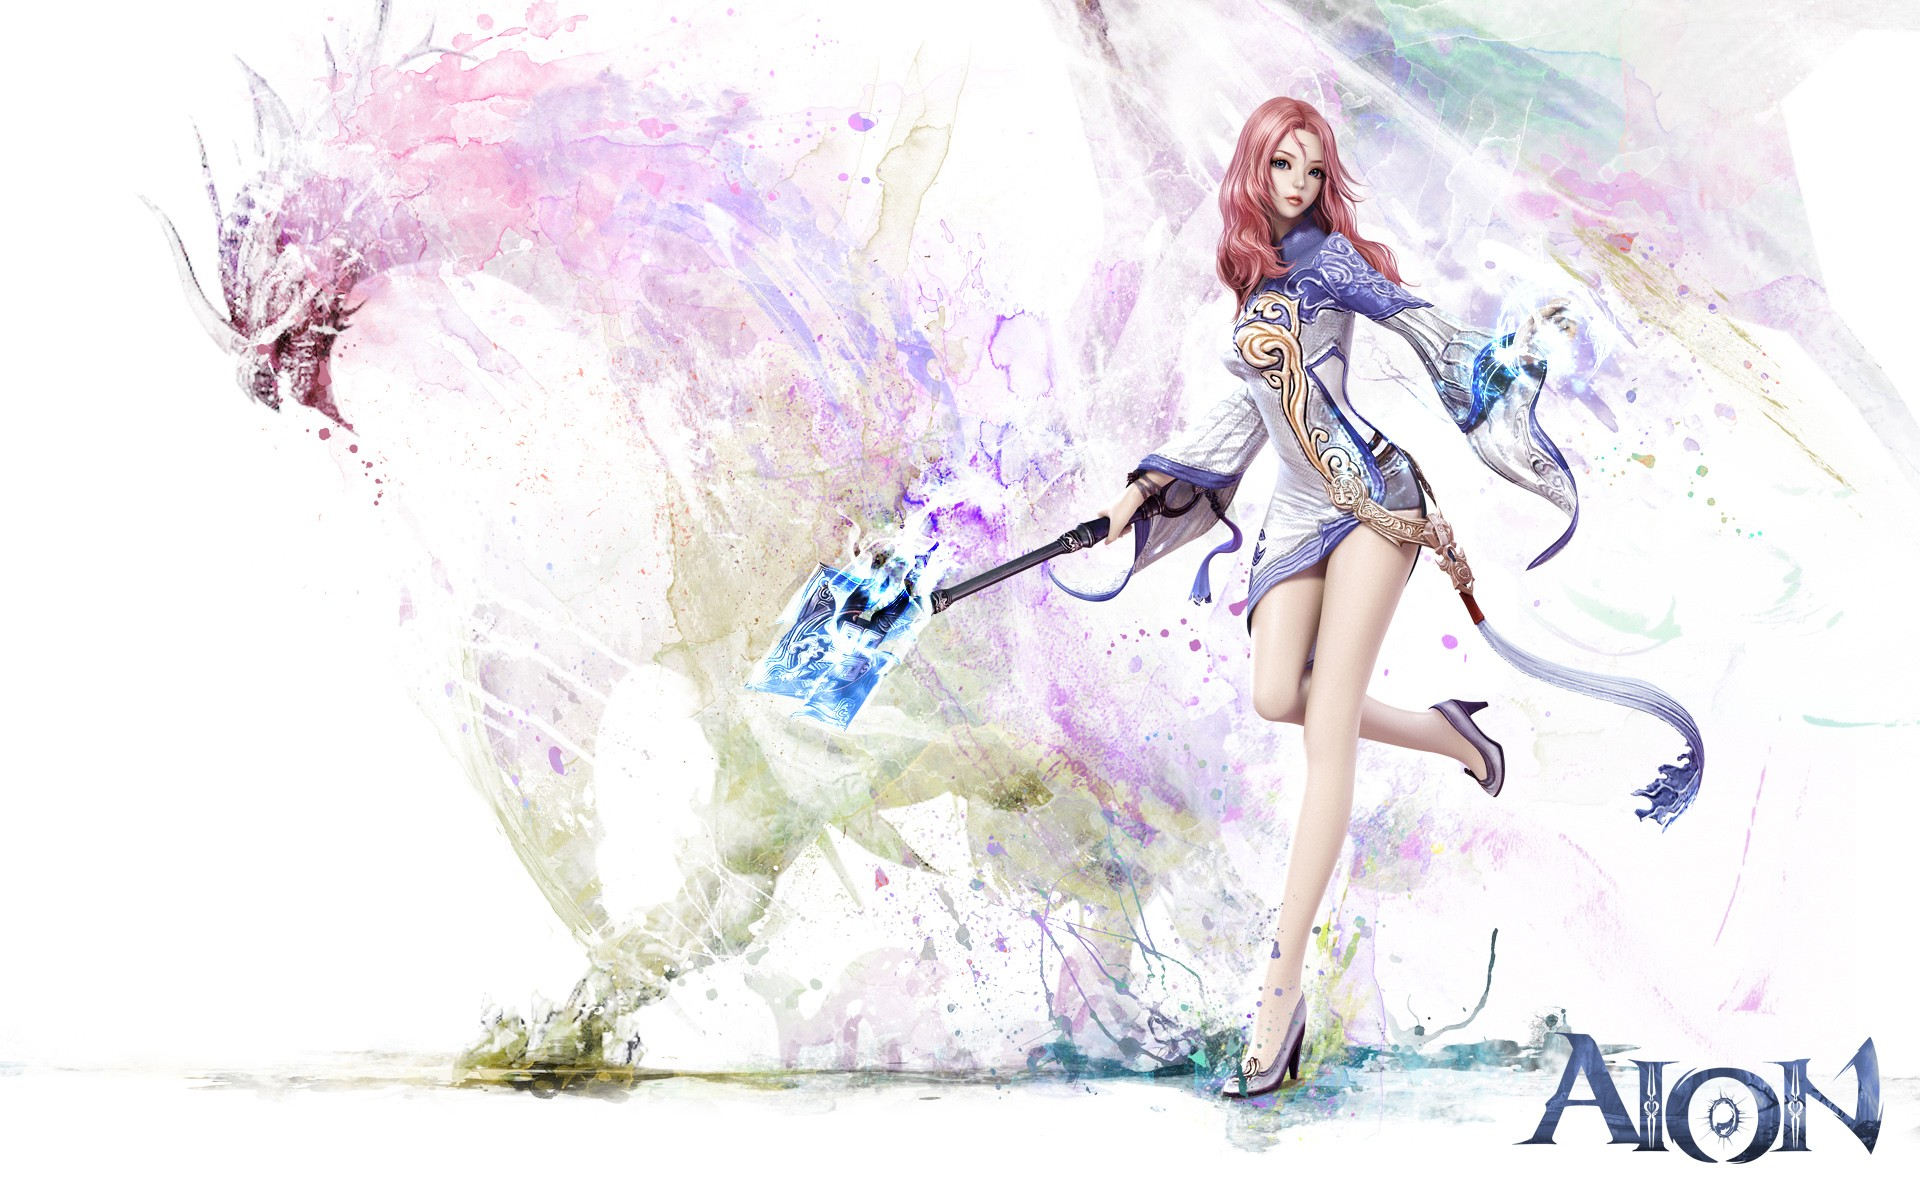 Fantasy Girl Wallpapers Pictures Aion Game Girl Wallpapers Hd Wallpapers Id 11825